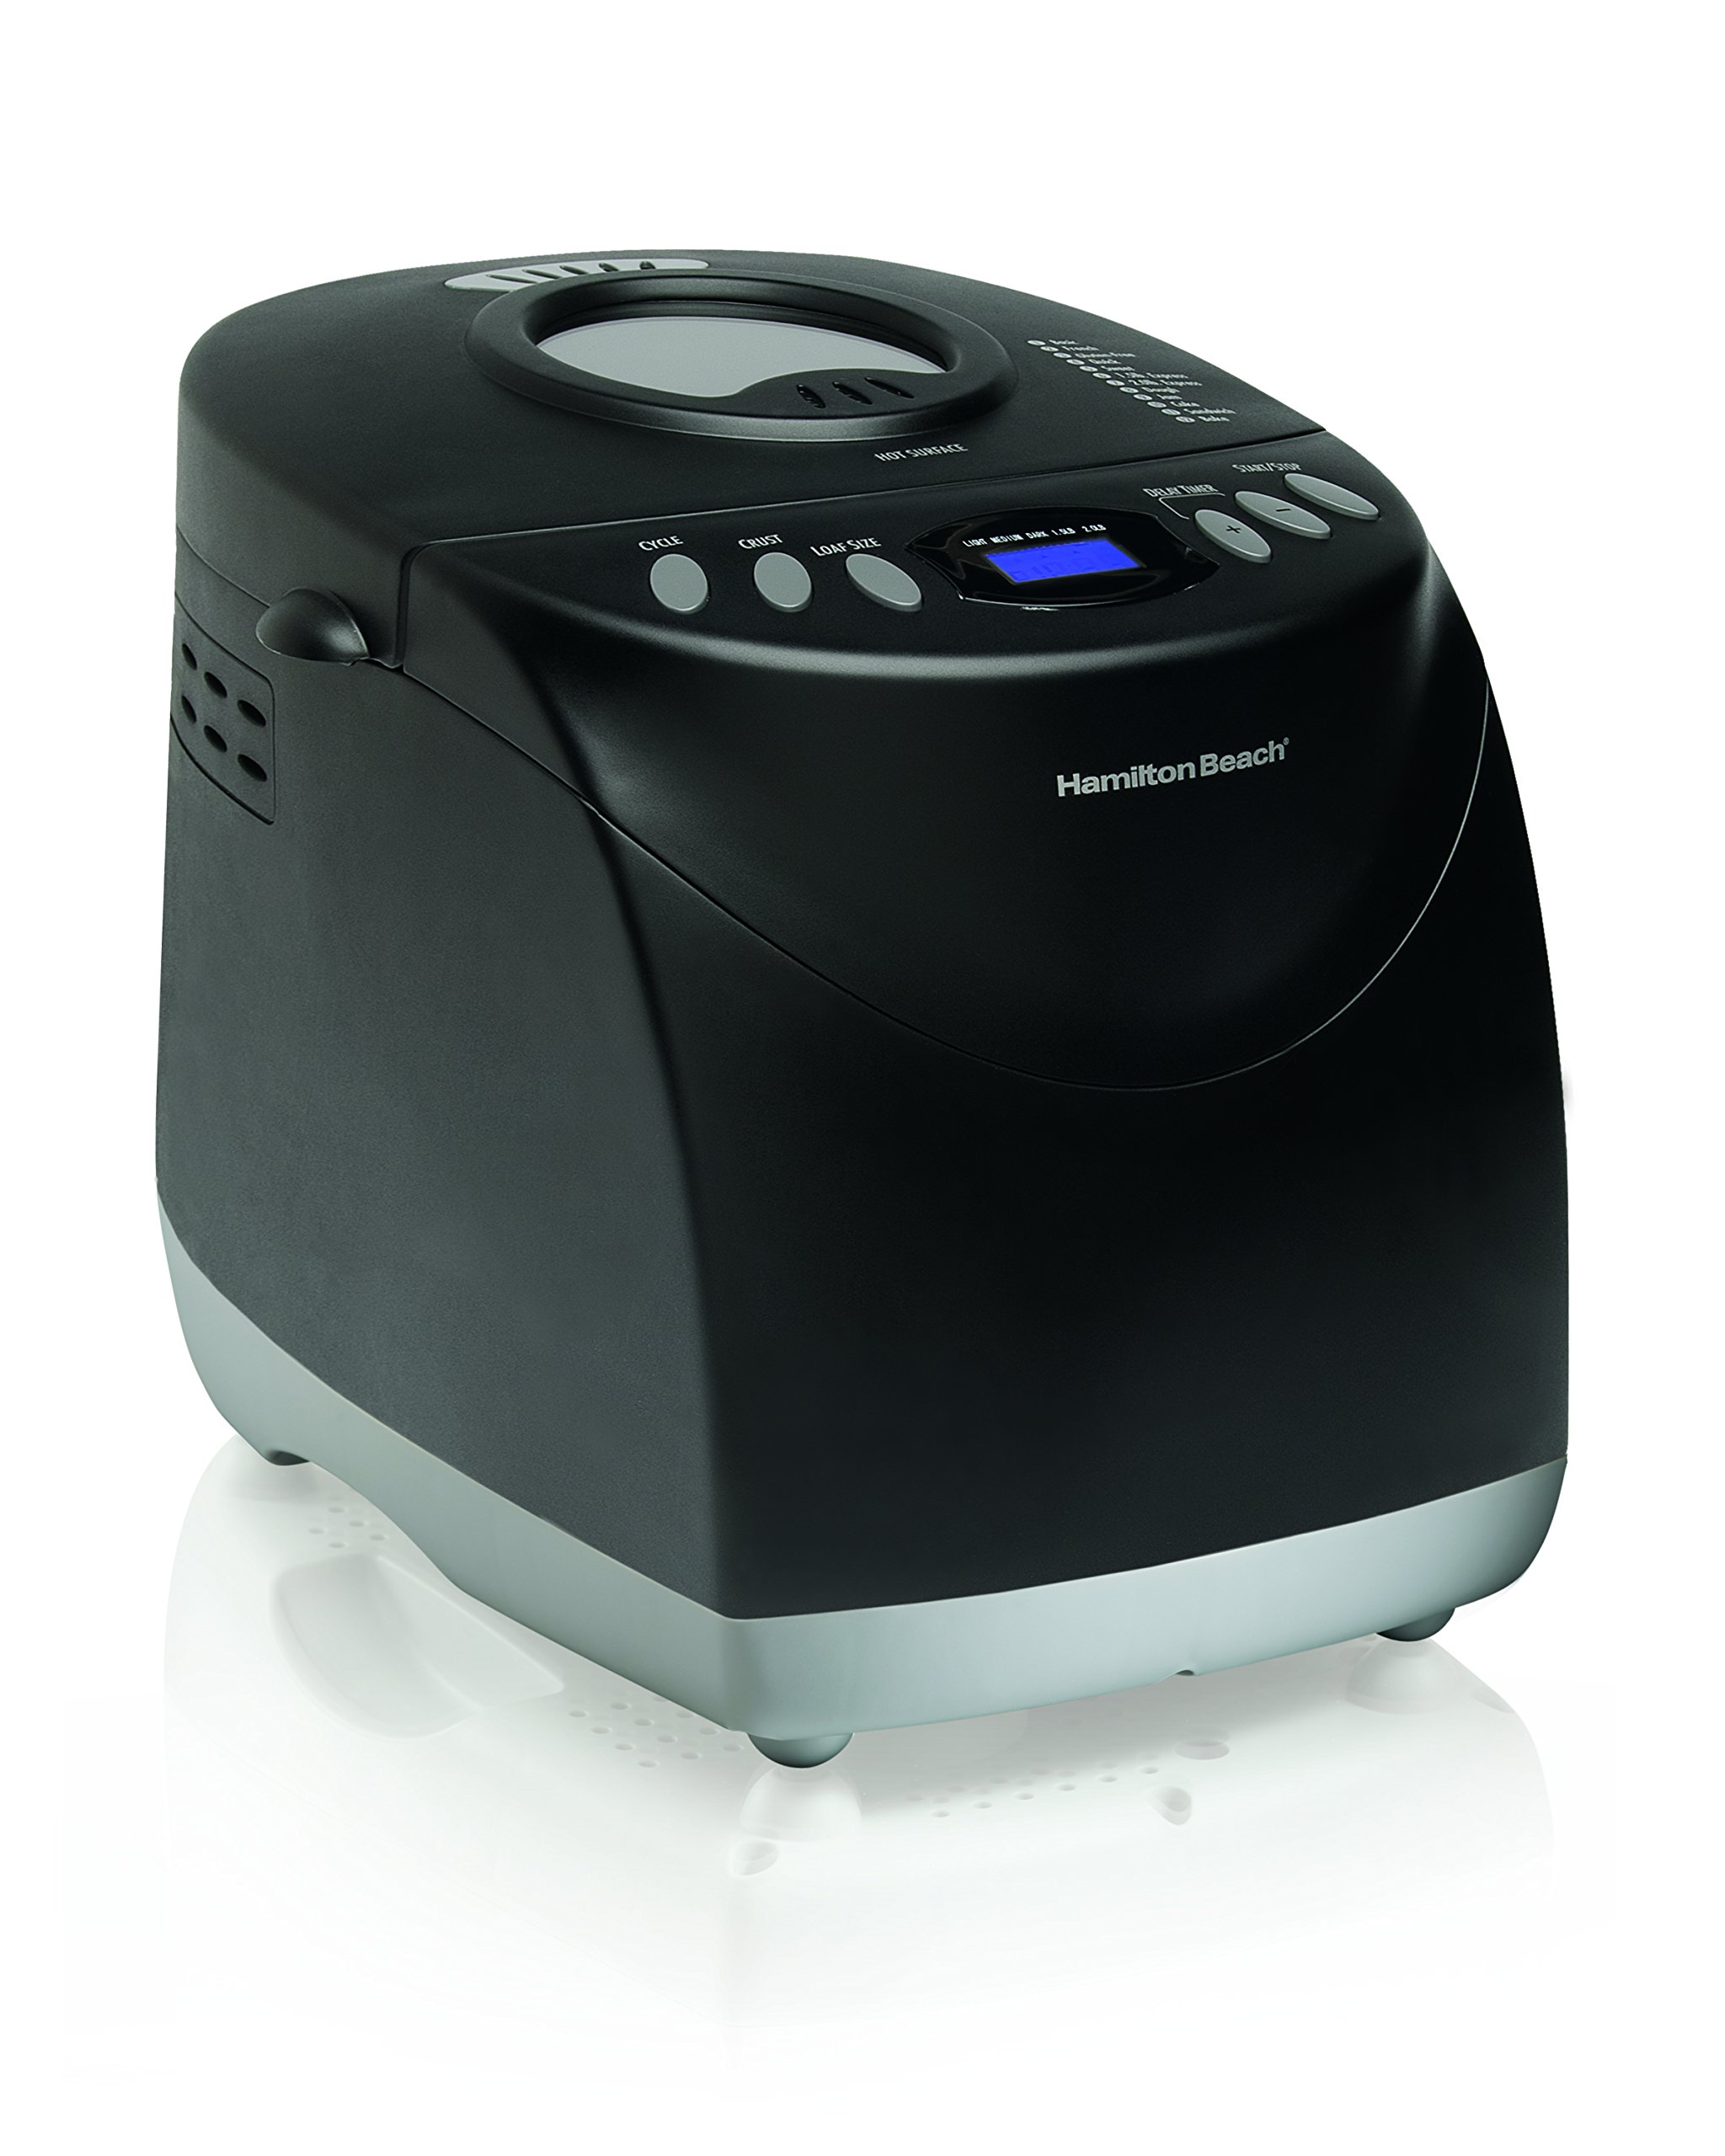 Hamilton Beach (29882) Bread Maker, 2 Pound Capacity Bread Maker machine, Gluten Free Setting, Programmable, Black